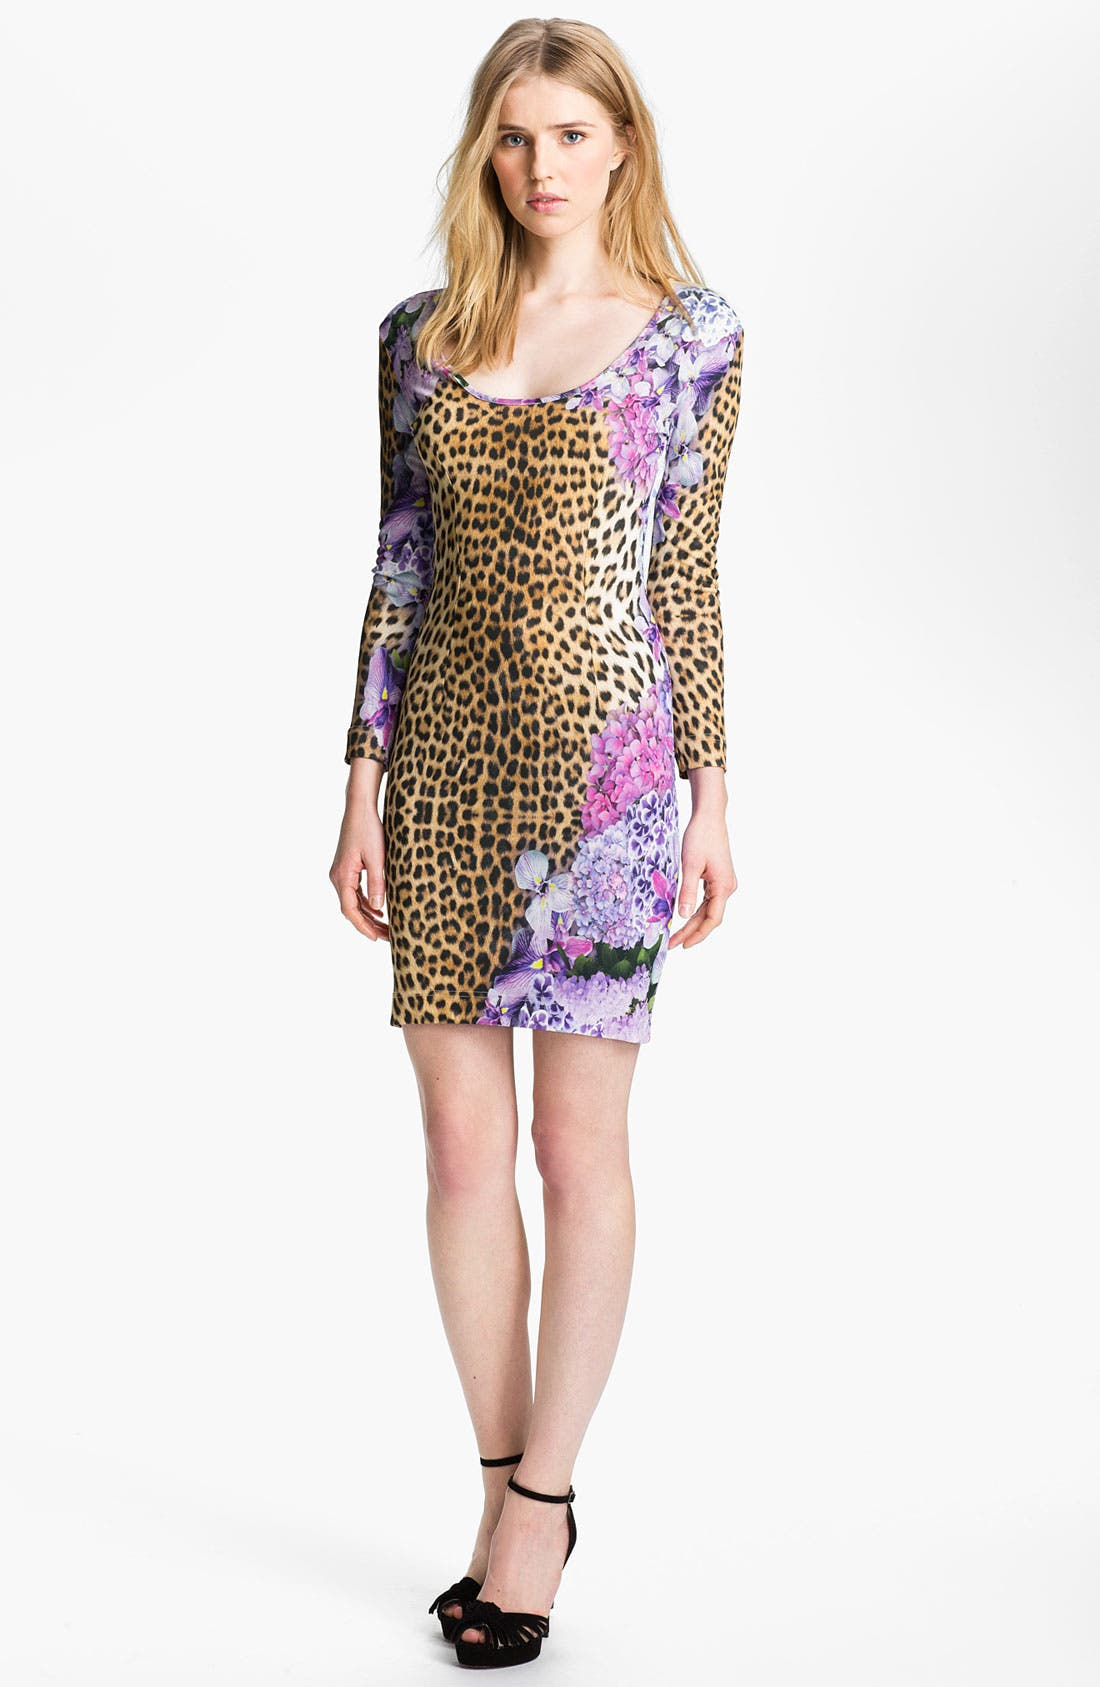 Alternate Image 1 Selected - Just Cavalli Leopard & Floral Print Jersey Dress